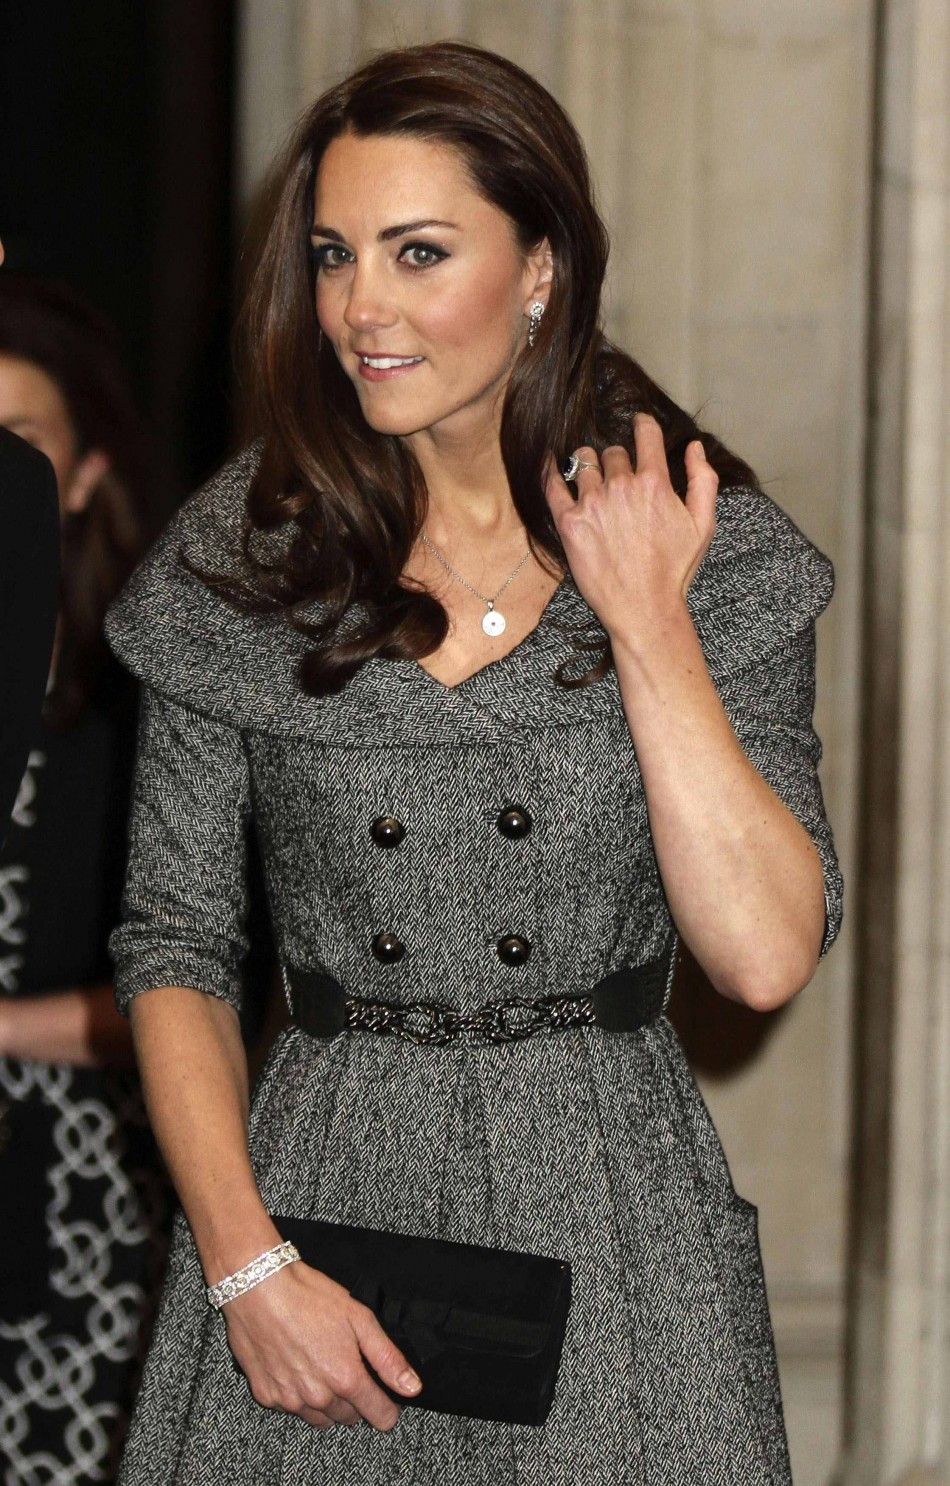 Britain's Catherine, Duchess of Cambridge leaves after visiting the Lucian Freud Portraits exhibition at the National Portrait Gallery in central London